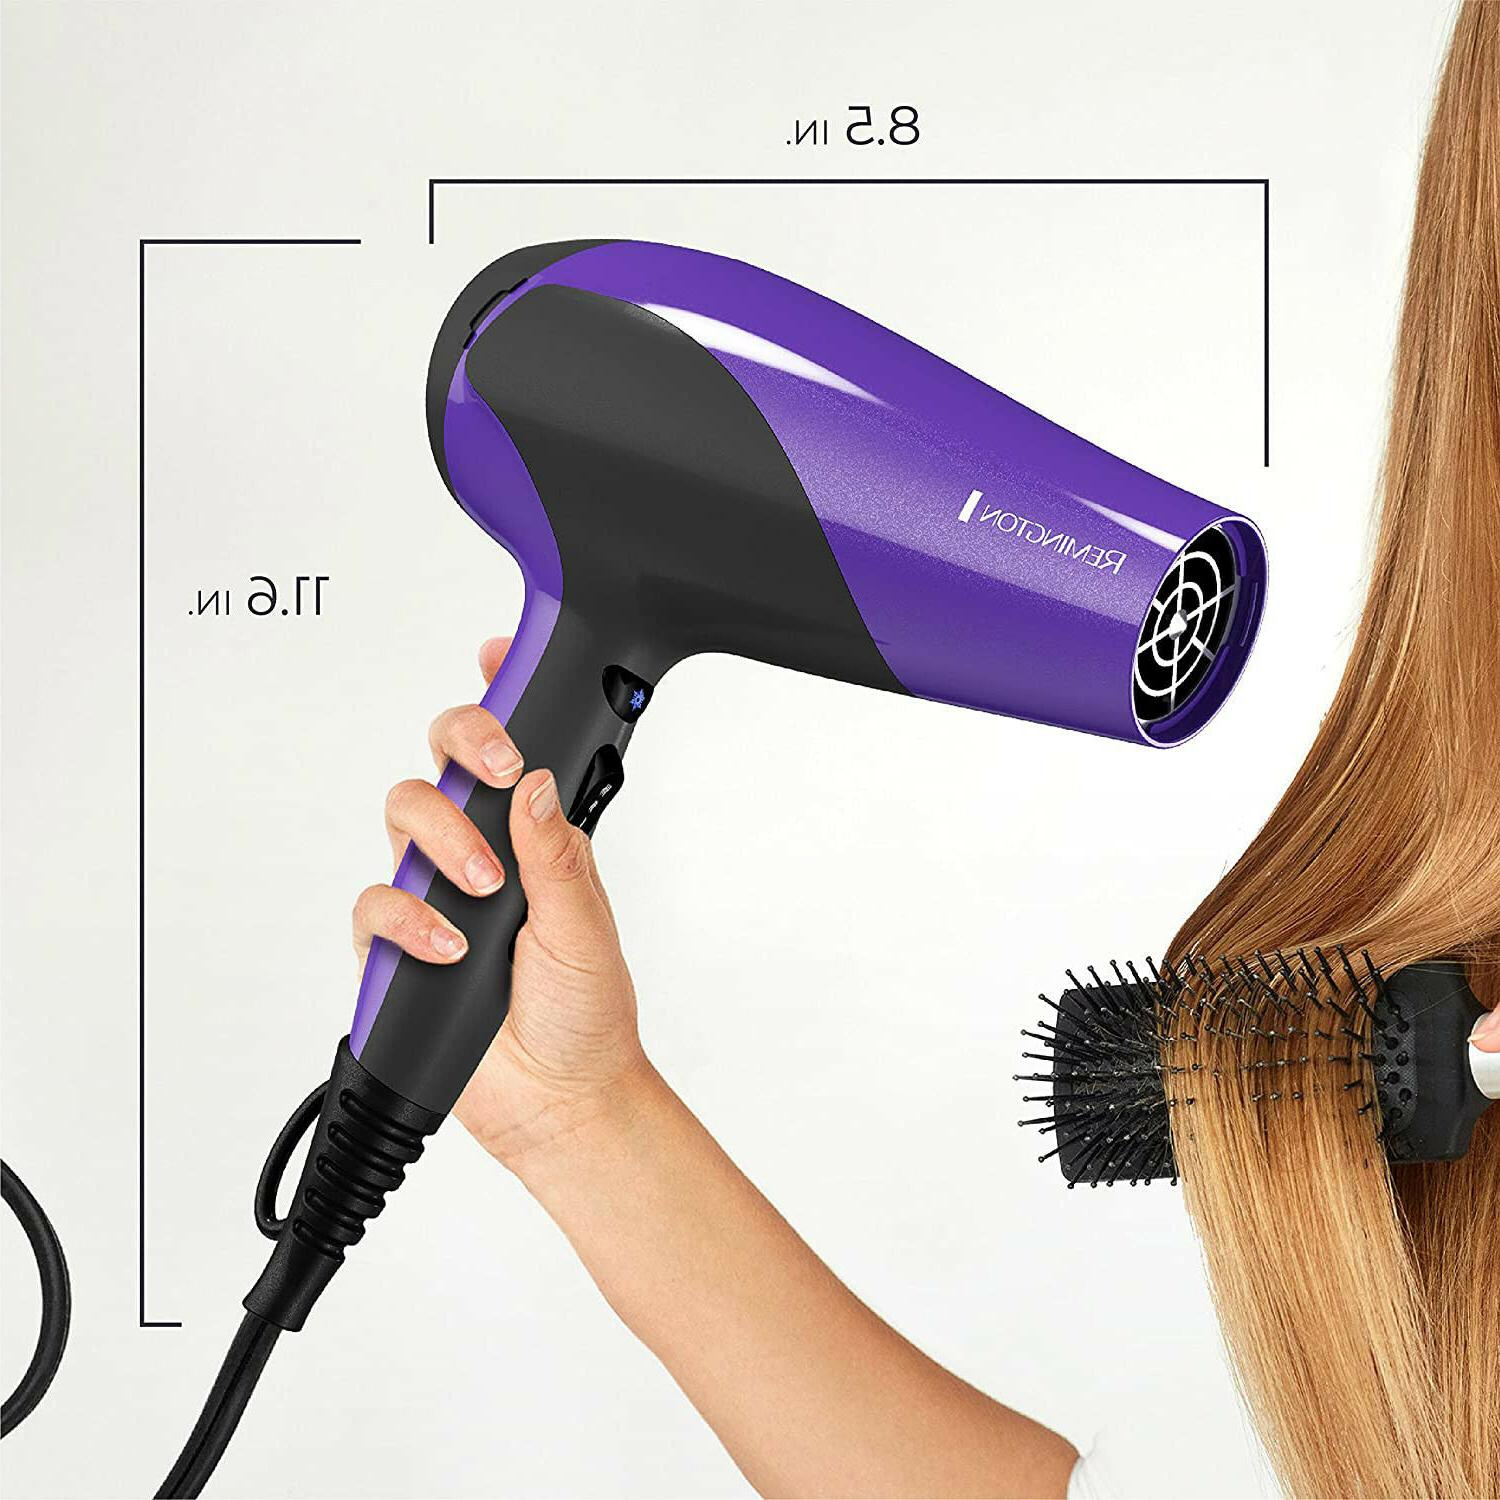 Ionic Hair Dryer Professional Turbo Blow Speed with Diffuser